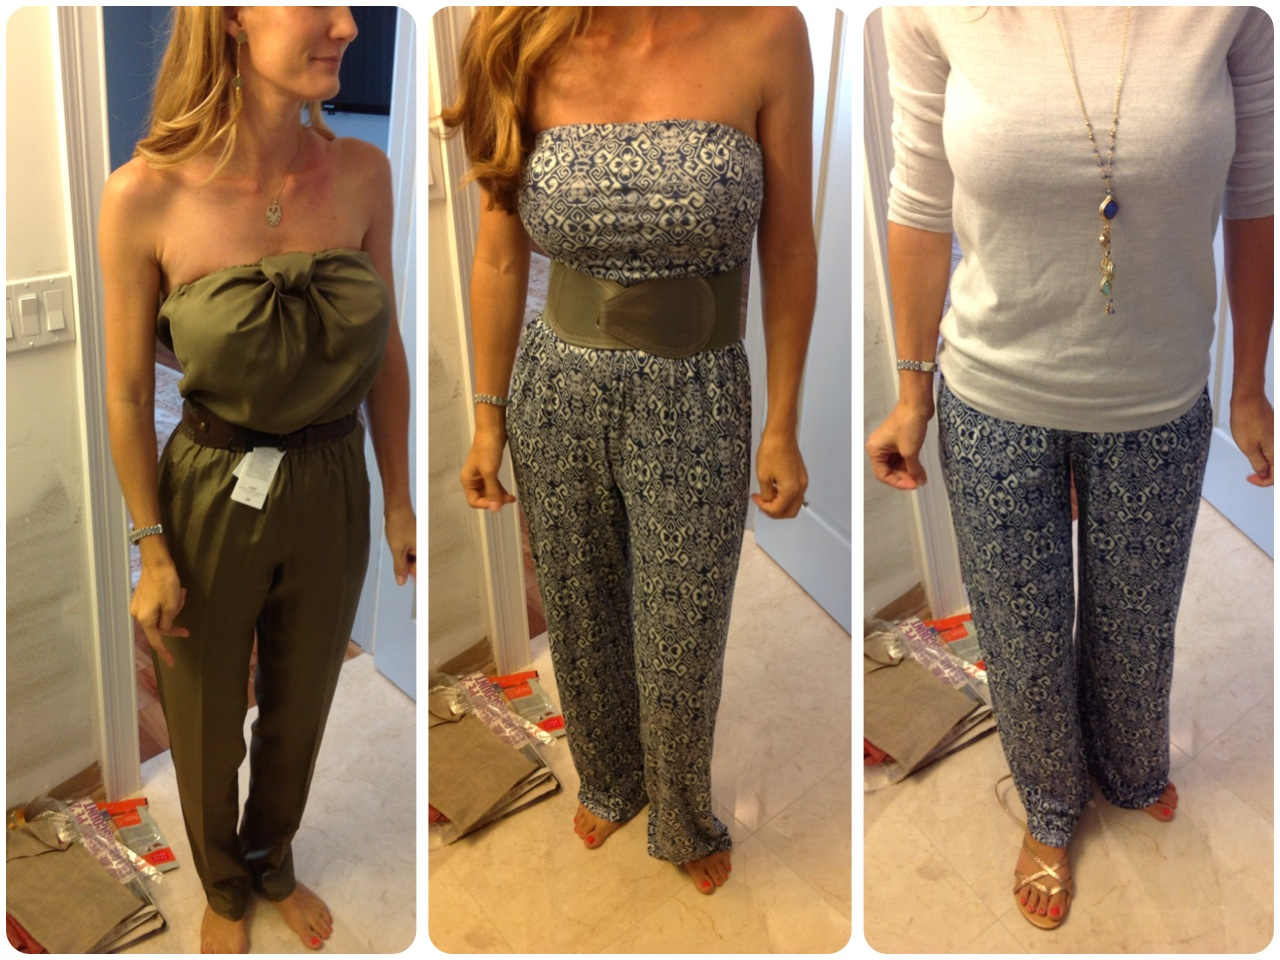 from left to right: olive green jumpsuit with detail along the top, blue patterned jumpsuit with matte grey and silver detail, same blue jumpsuit with cream sweater and long necklace